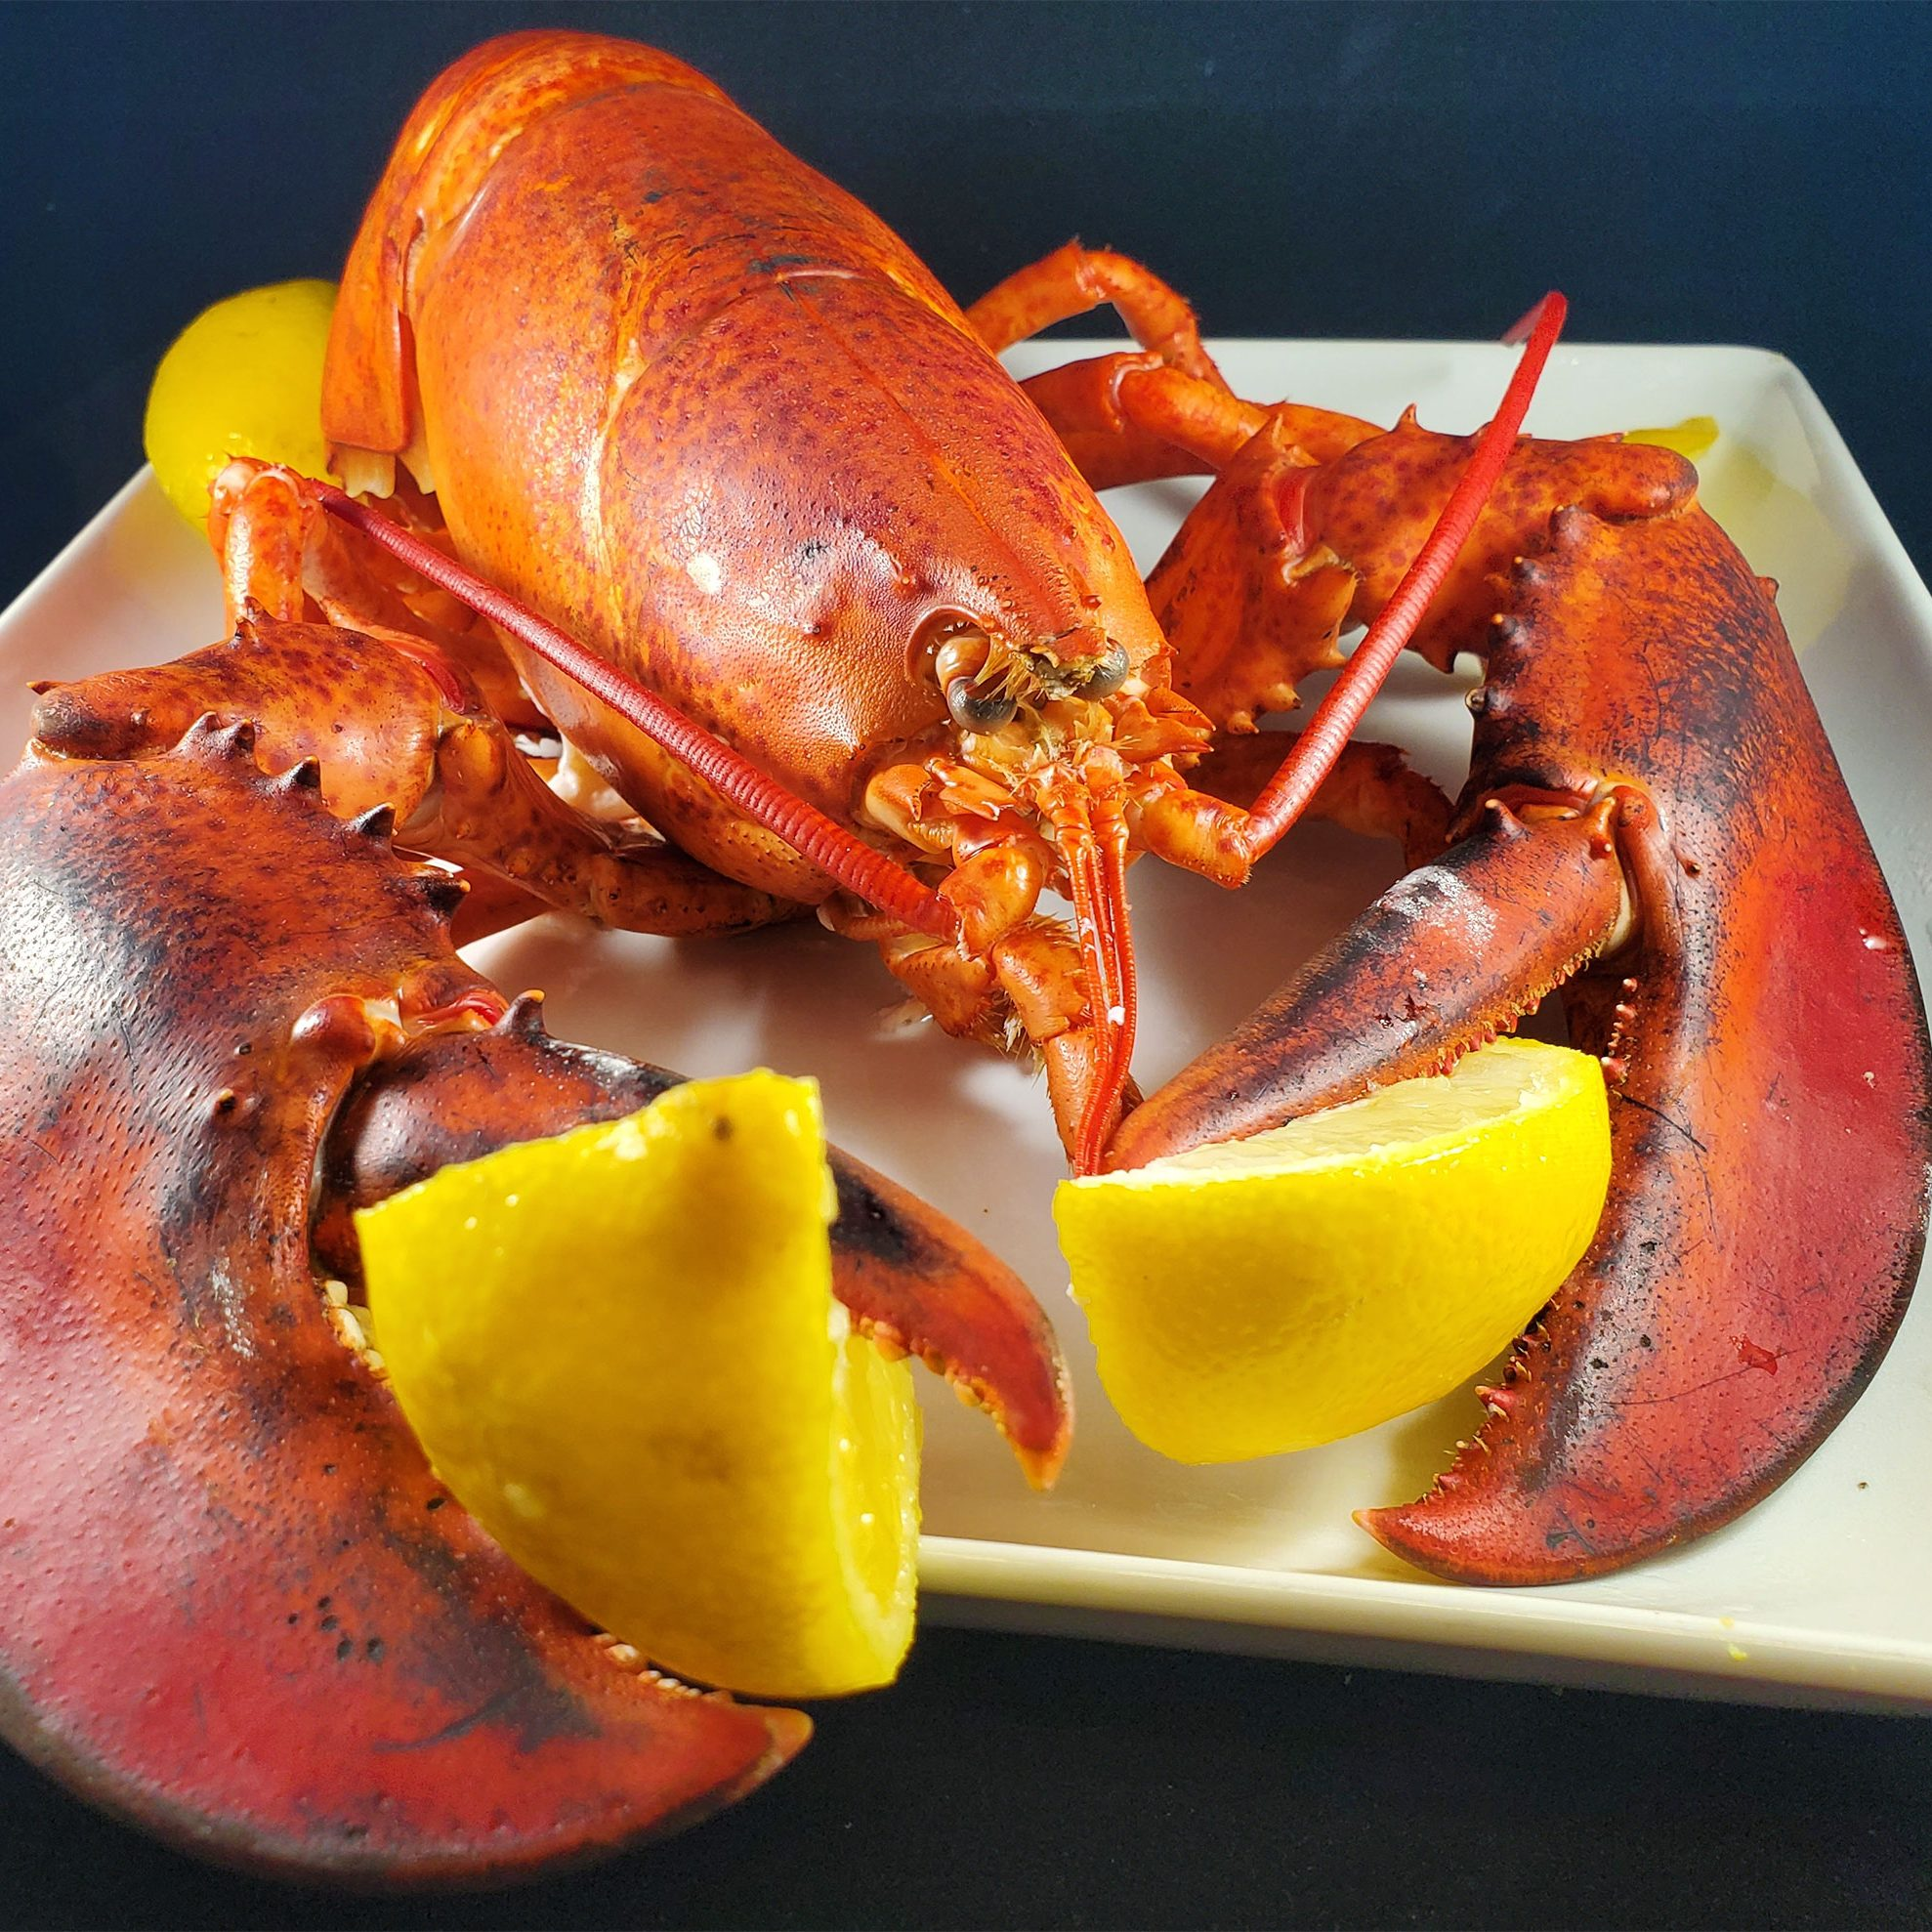 Boiled Lobster with Spicy Garlic Butter Dipping Sauce